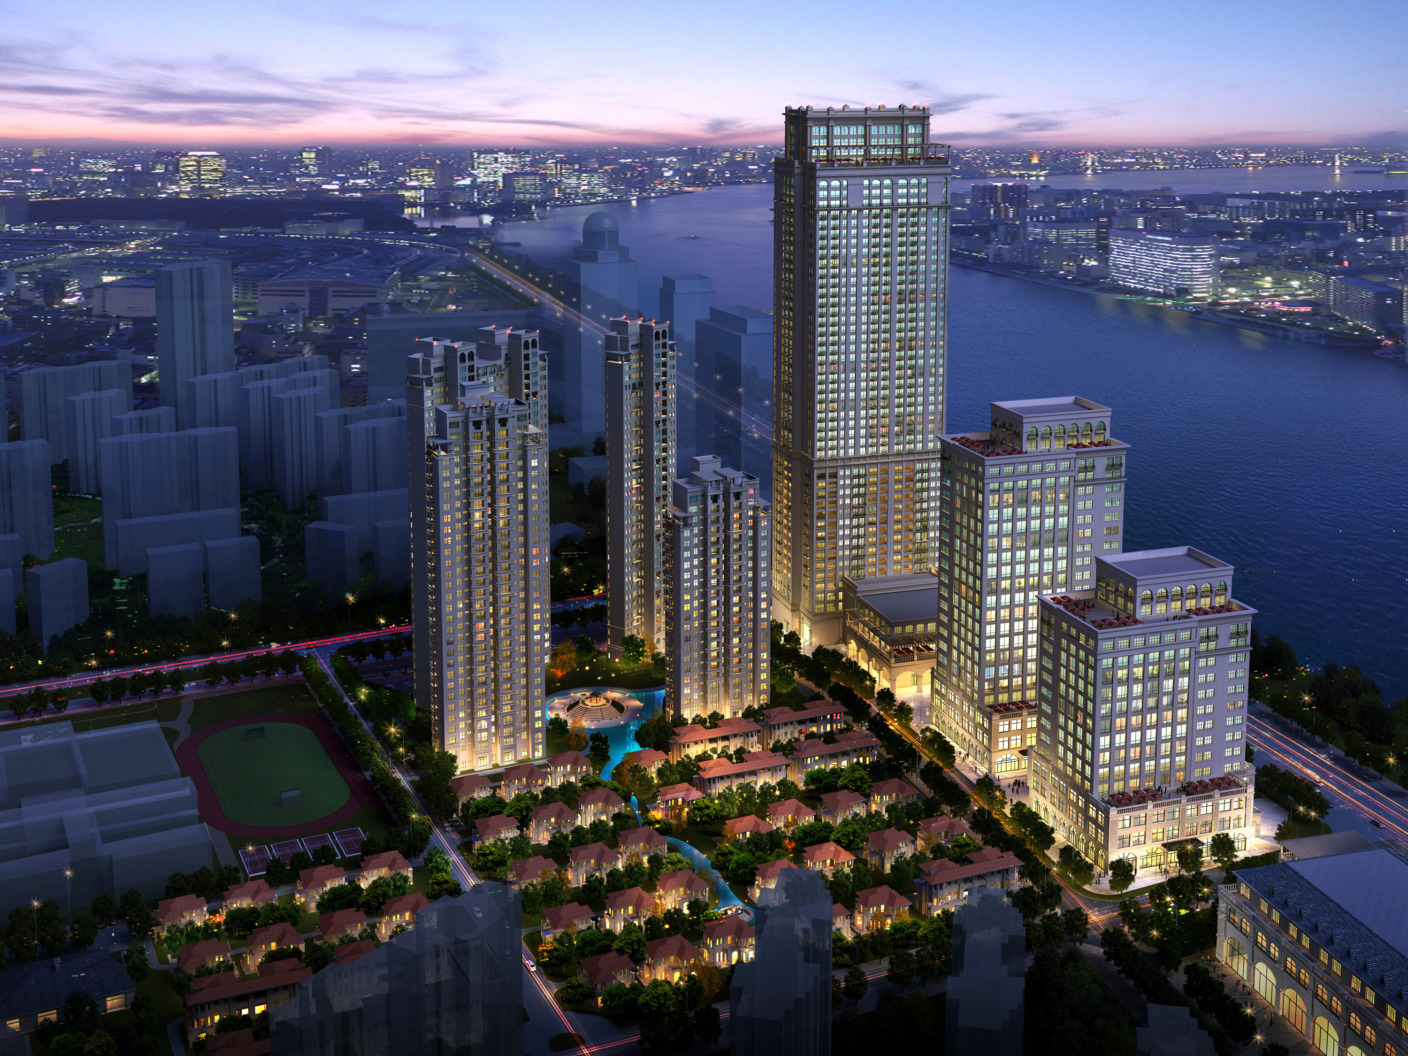 Marriott Nanchang Hotel + Mixed Use Development